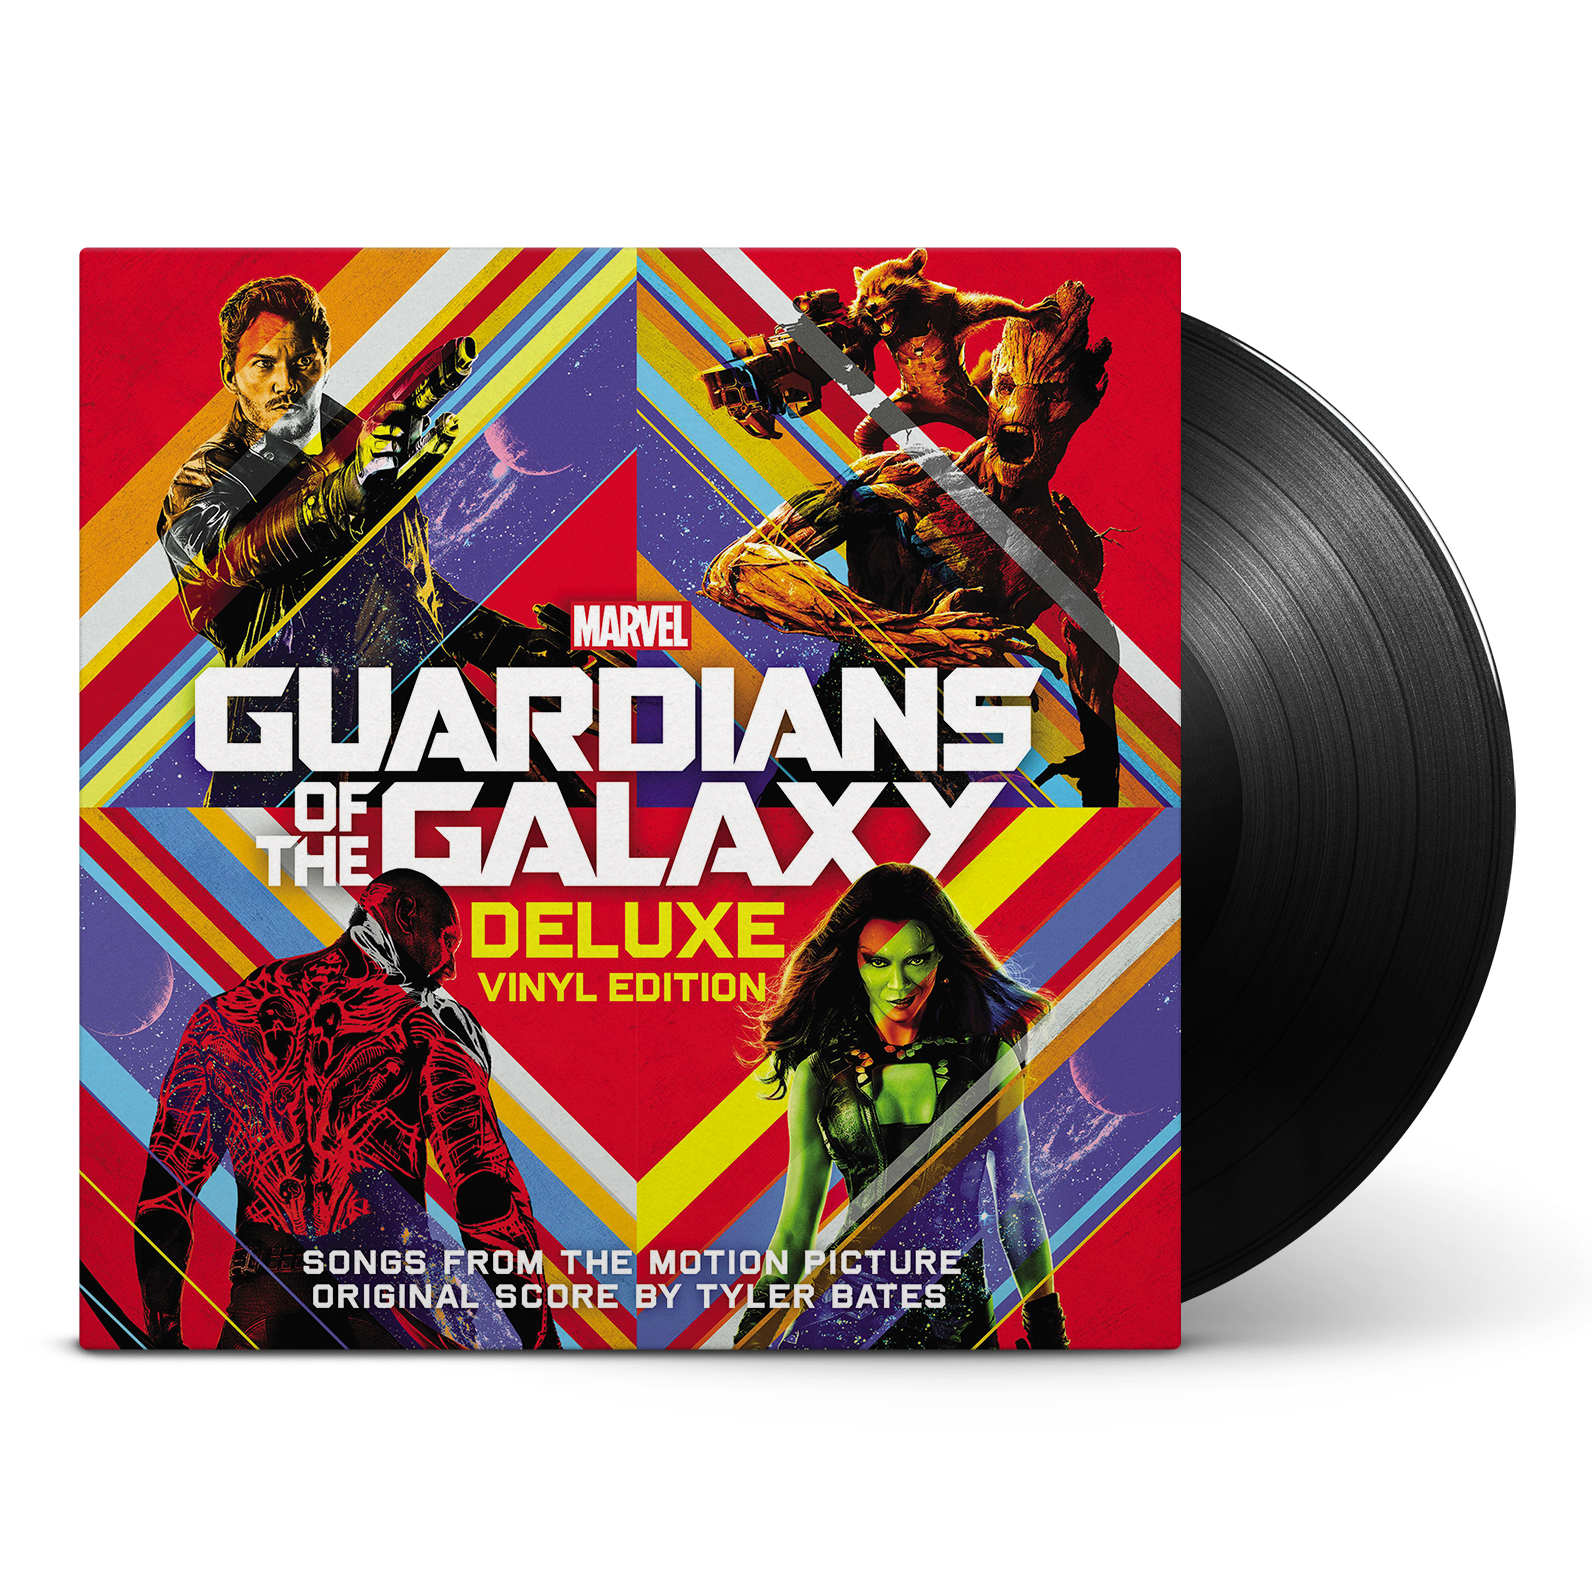 Guardians of the Galaxy Sountrack